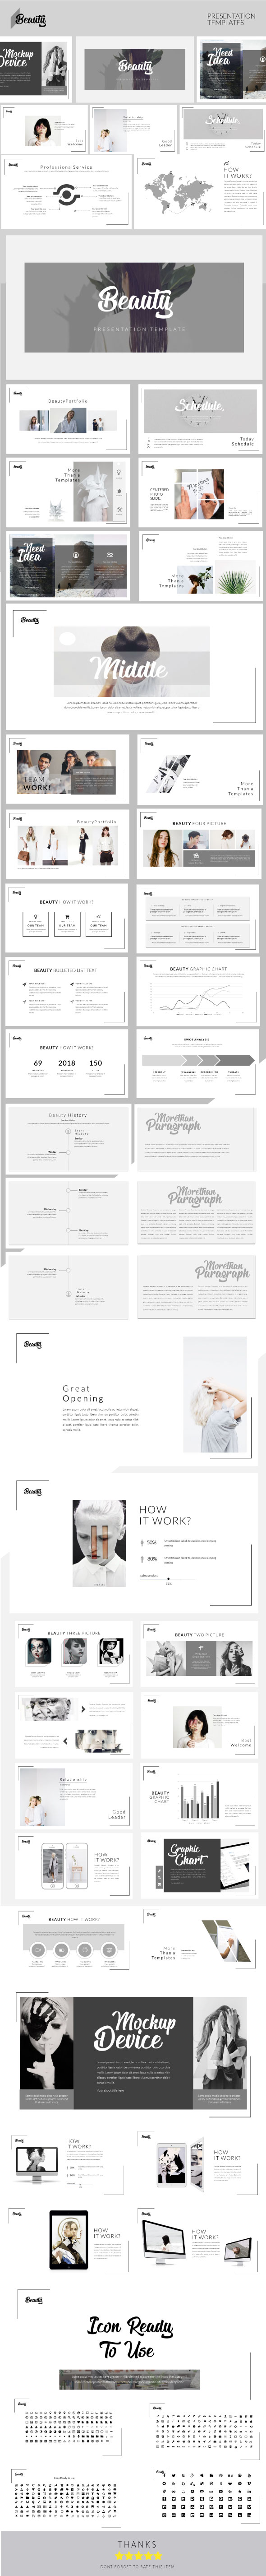 Beauty - Multipurpose Google Slide Presentation Templates - Google Slides Presentation Templates